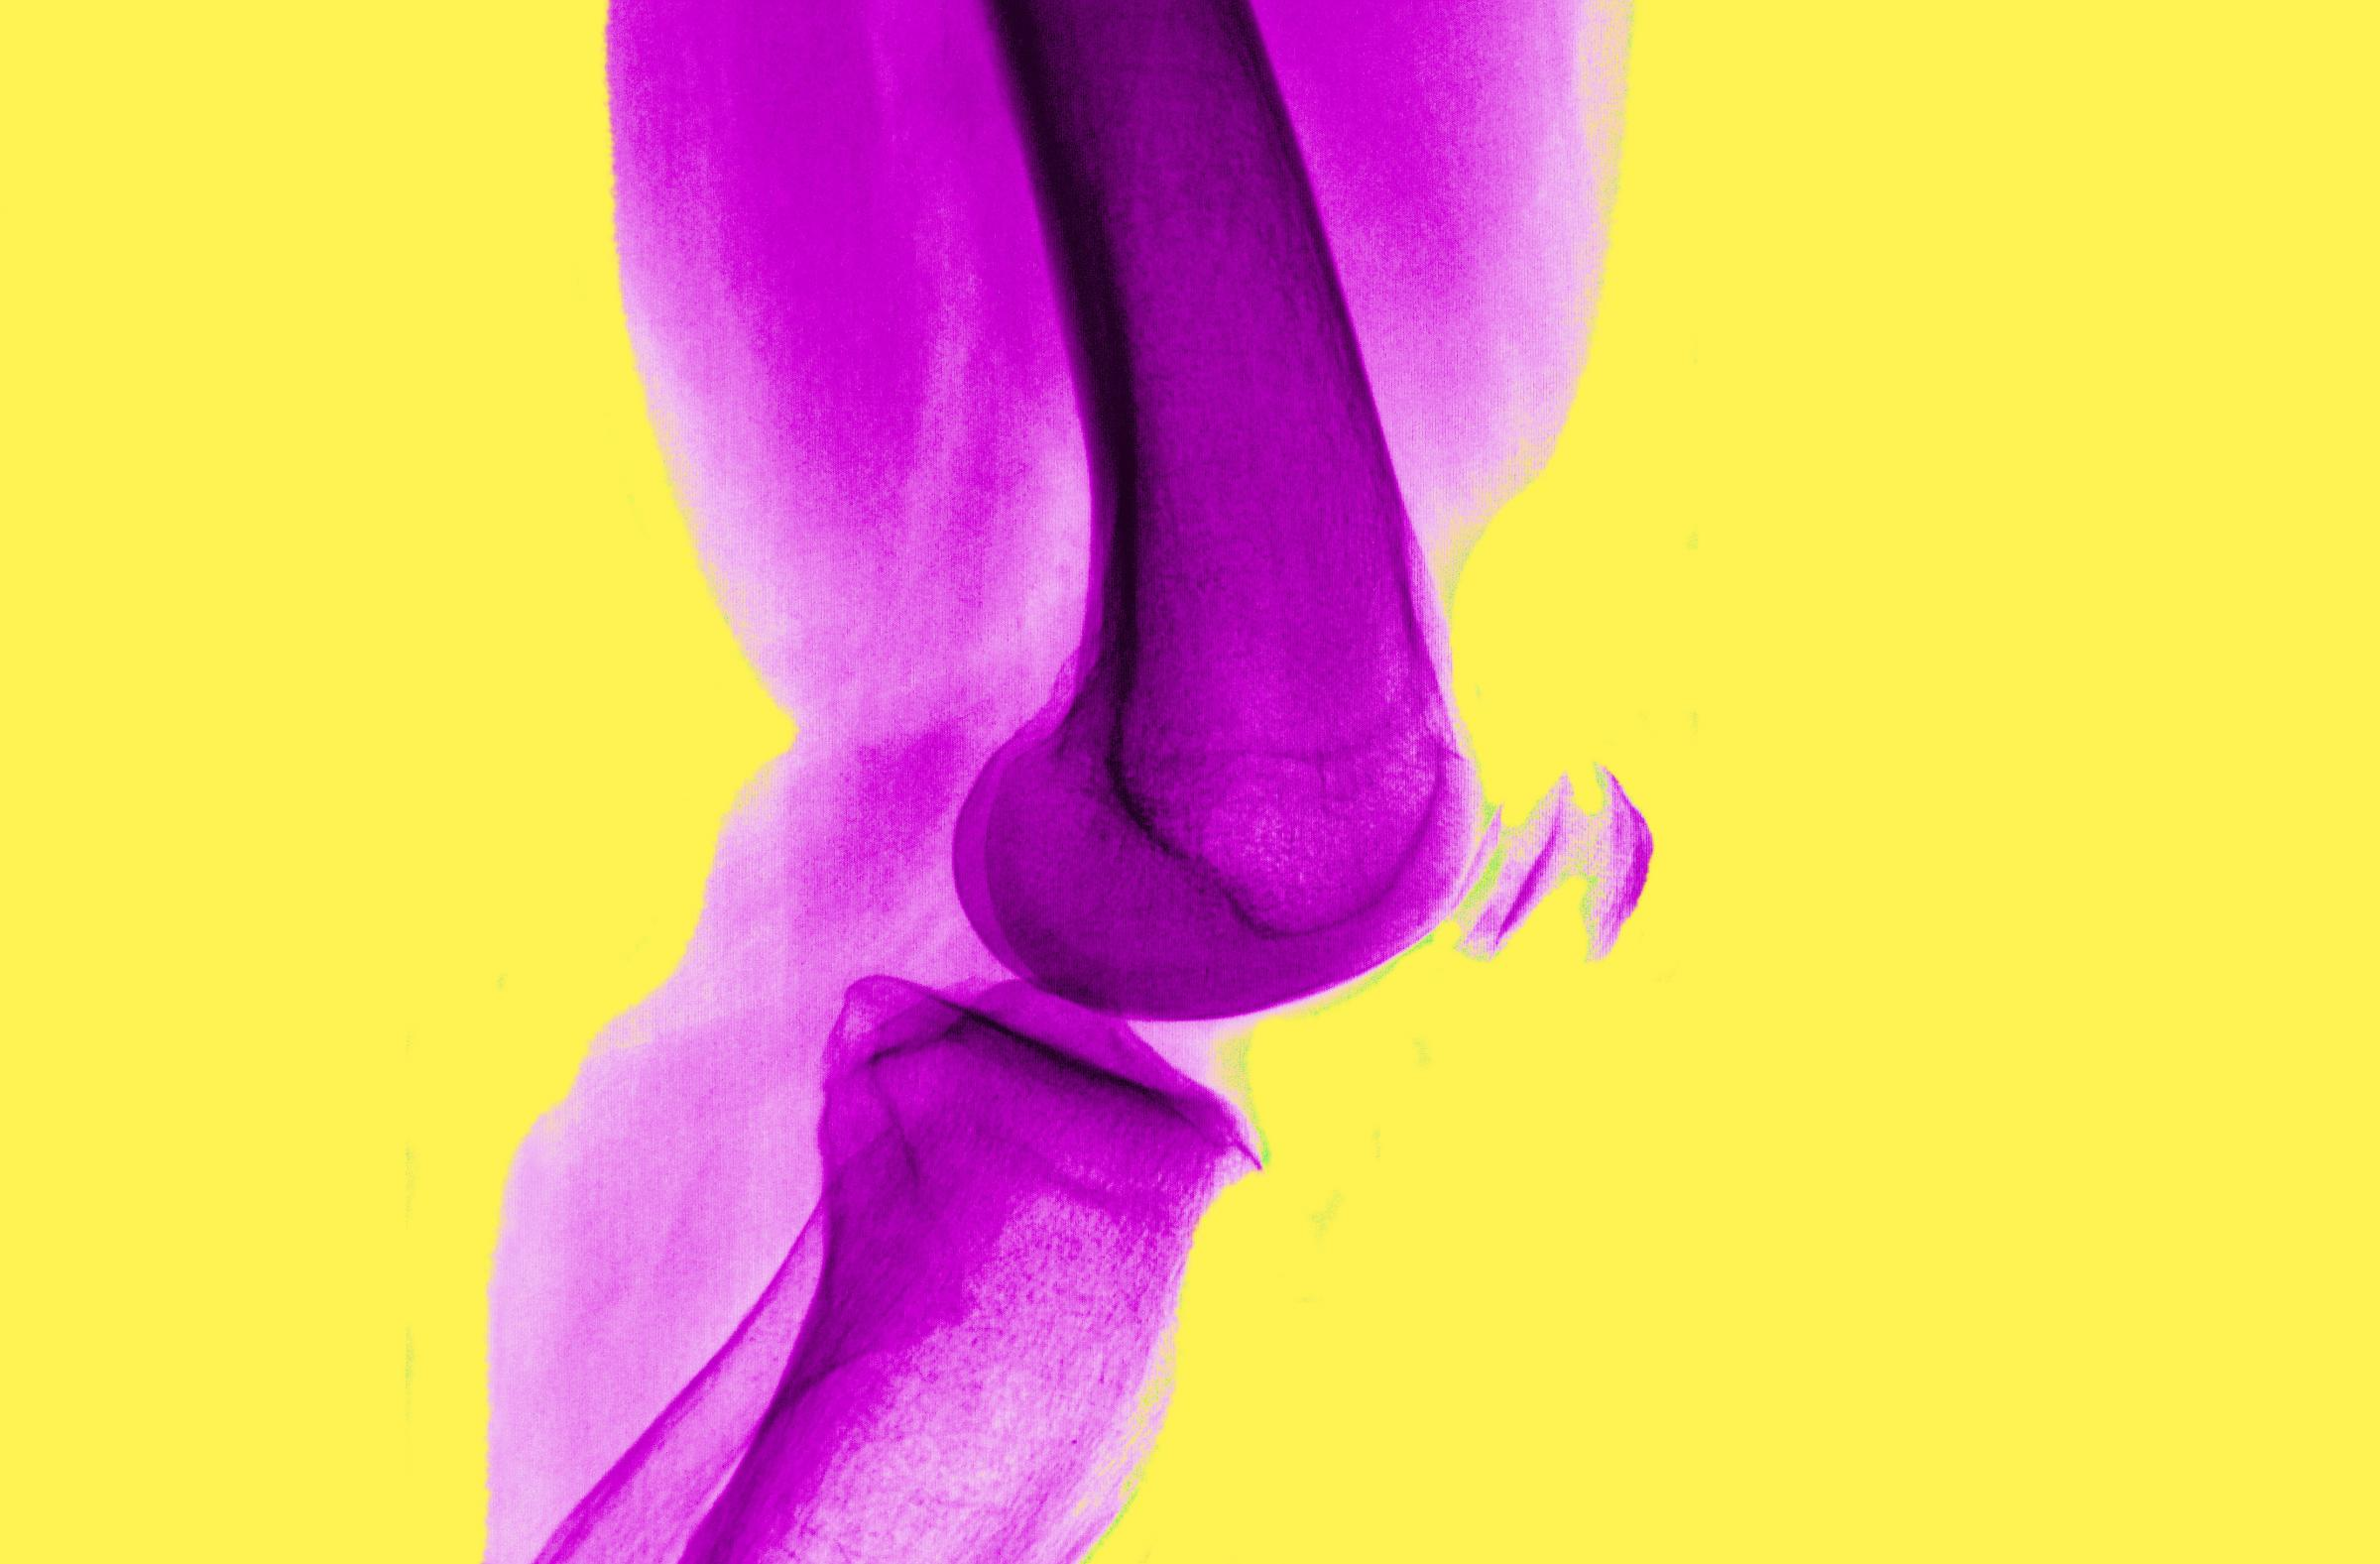 Arthroscopic surgery may not help treat arthritis - 5 insights Featured